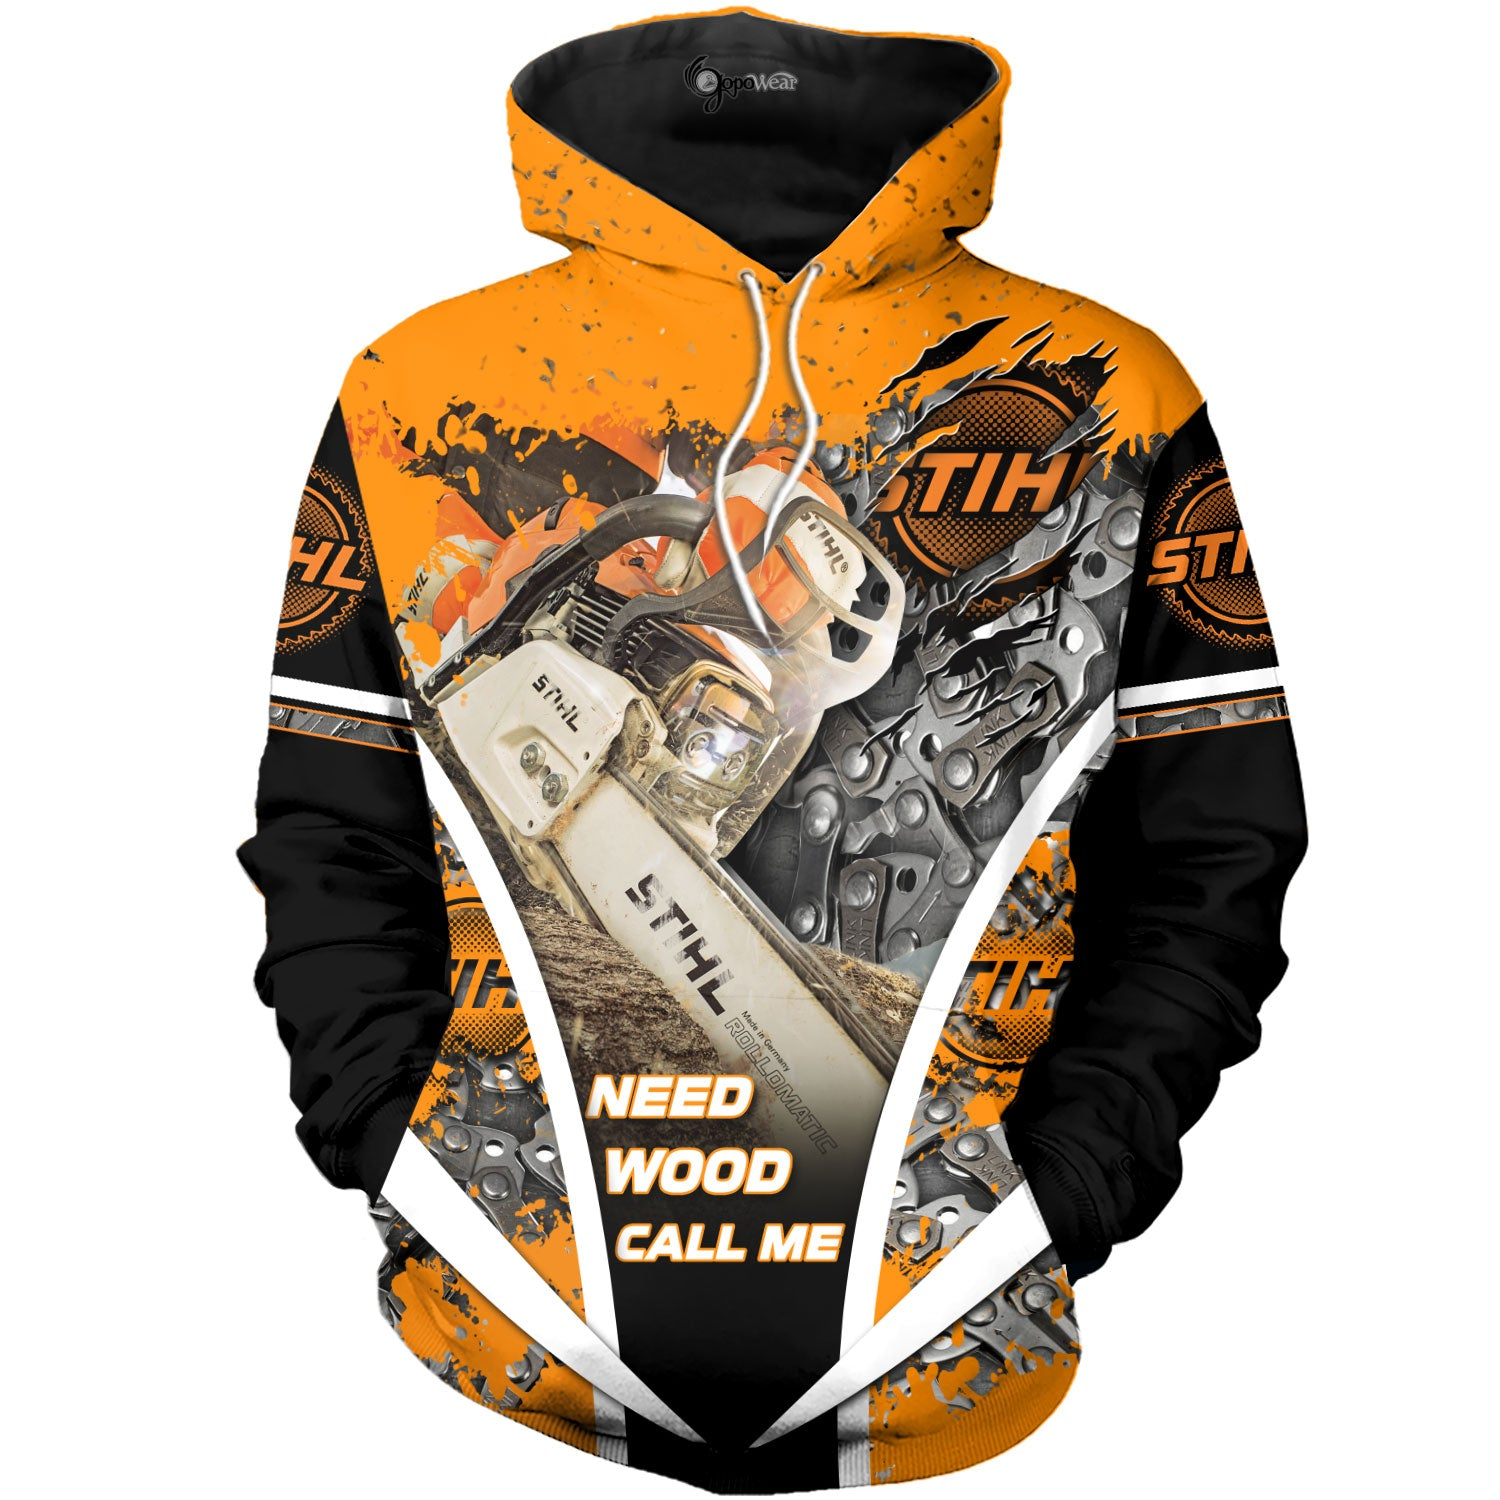 Gopowear Job_Beautiful-Chainsaw_SCL0508920_3d_hoodie.jpg